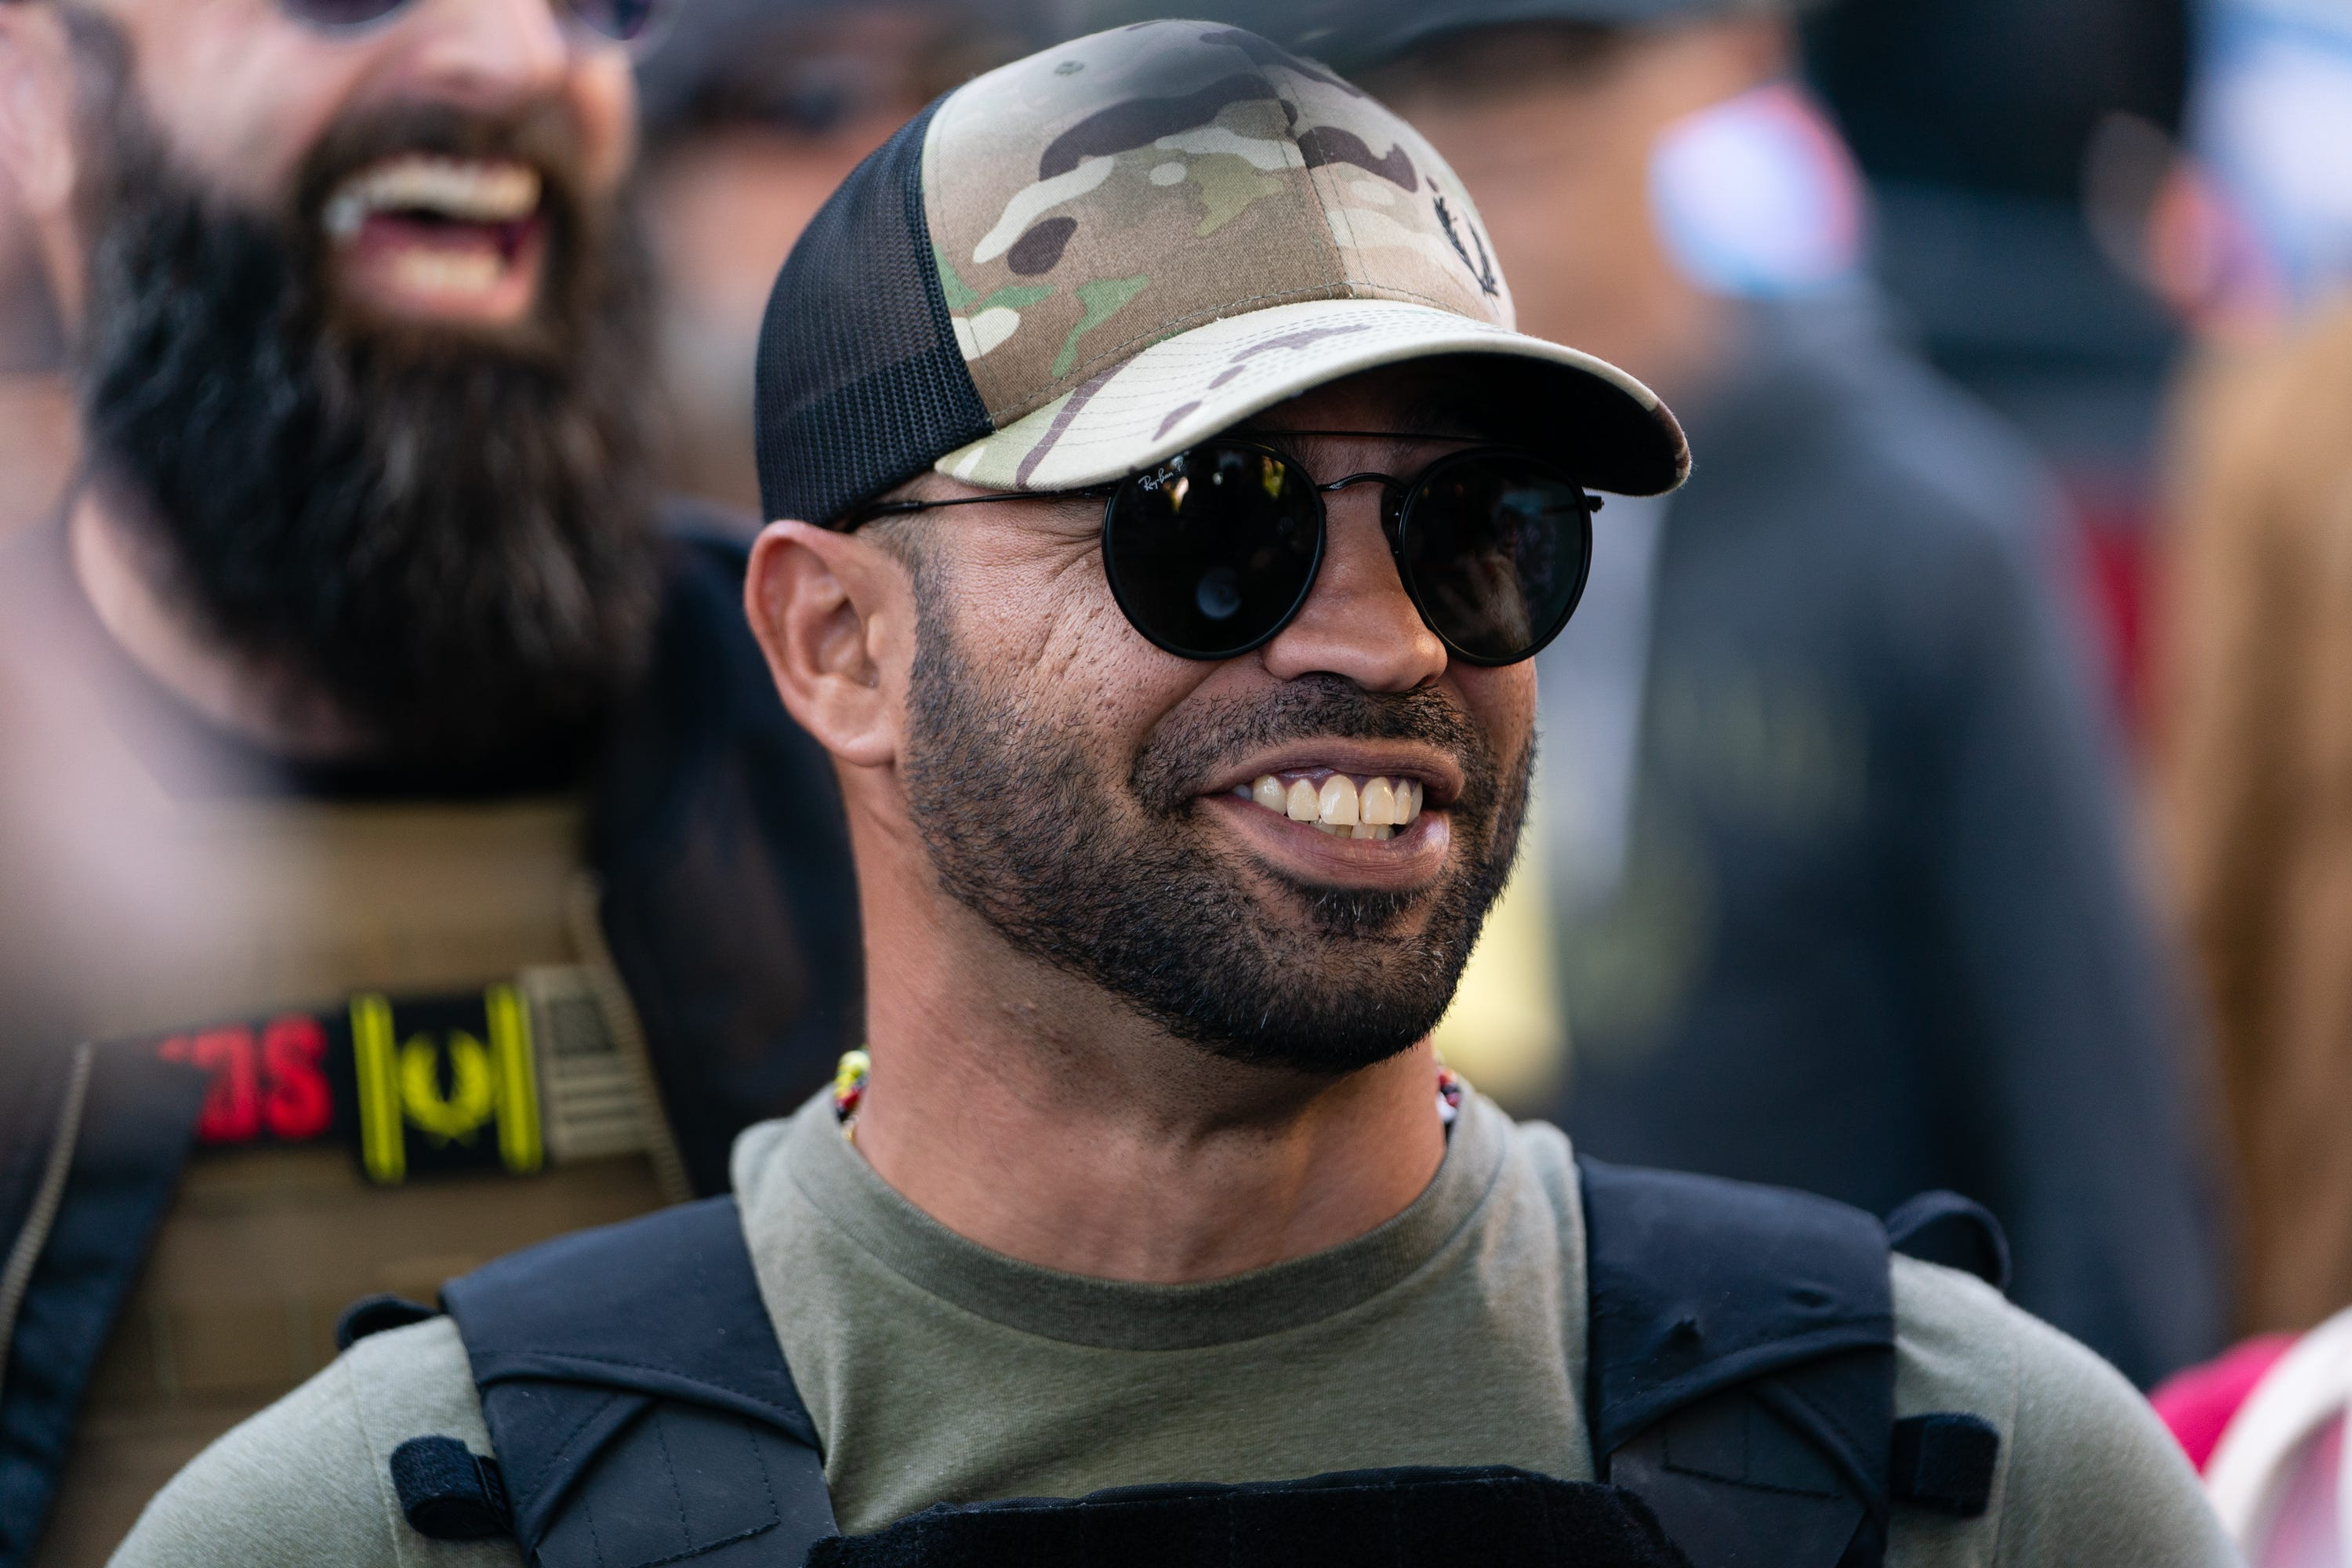 """Enrique Tarrio, leader of the Proud Boys, a far-right group, is seen at a """"Stop the Steal"""" rally against the results of the U.S. presidential election outside the Georgia State Capitol on Nov. 18, 2020, in Atlanta."""